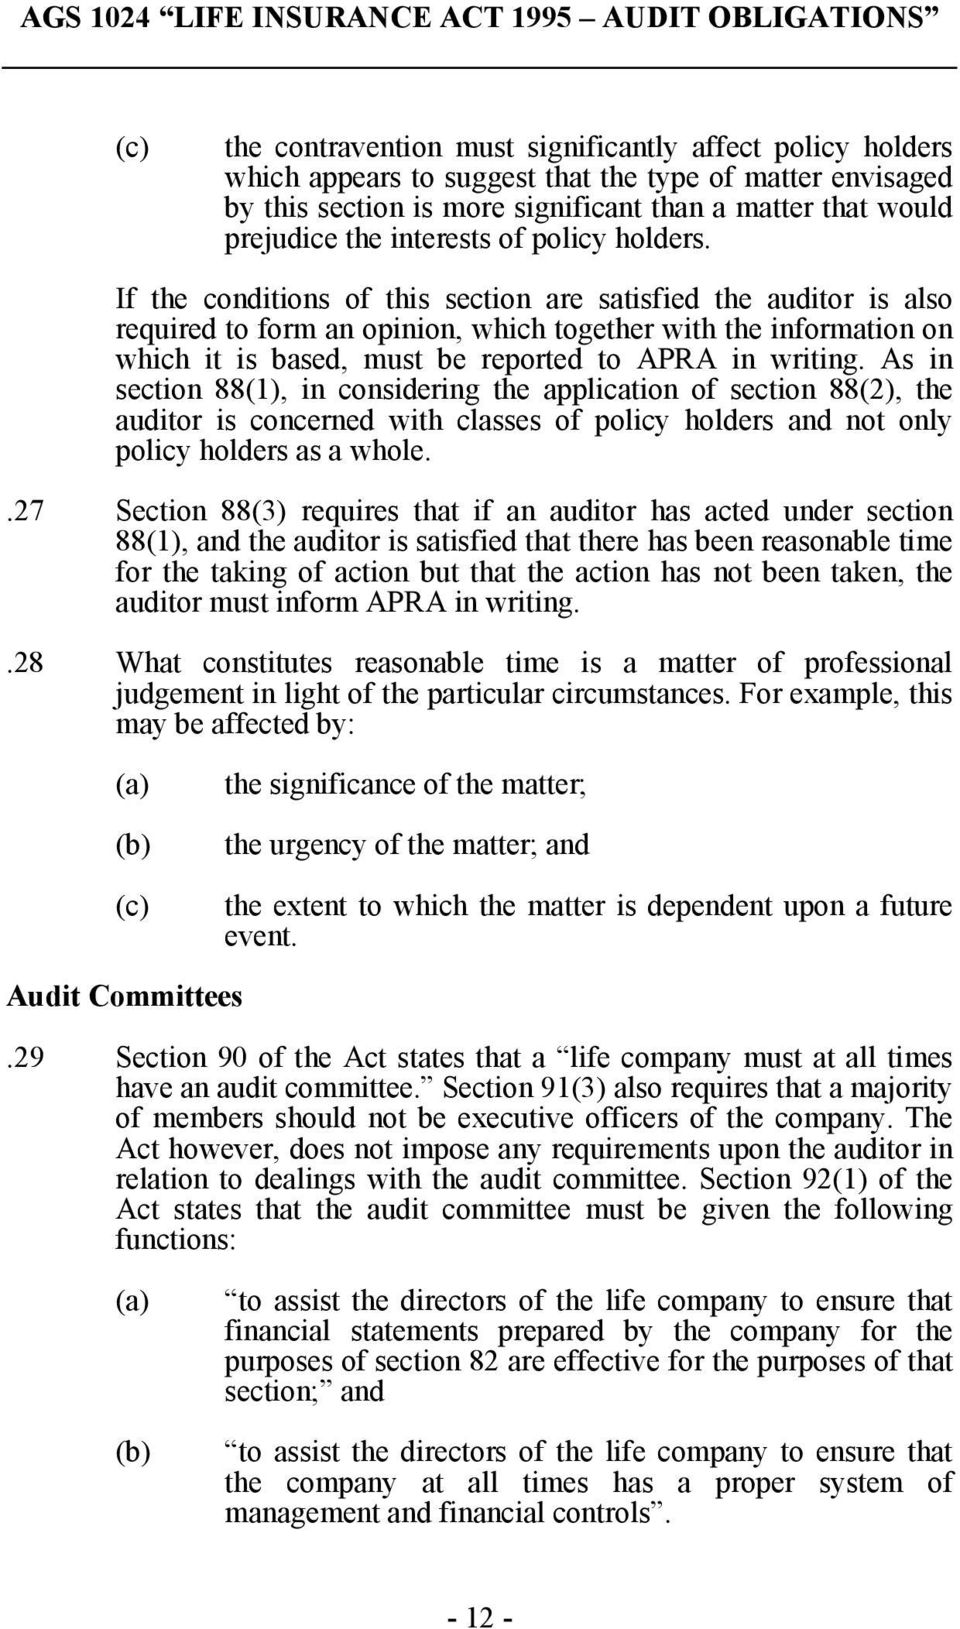 If the conditions of this section are satisfied the auditor is also required to form an opinion, which together with the information on which it is based, must be reported to APRA in writing.